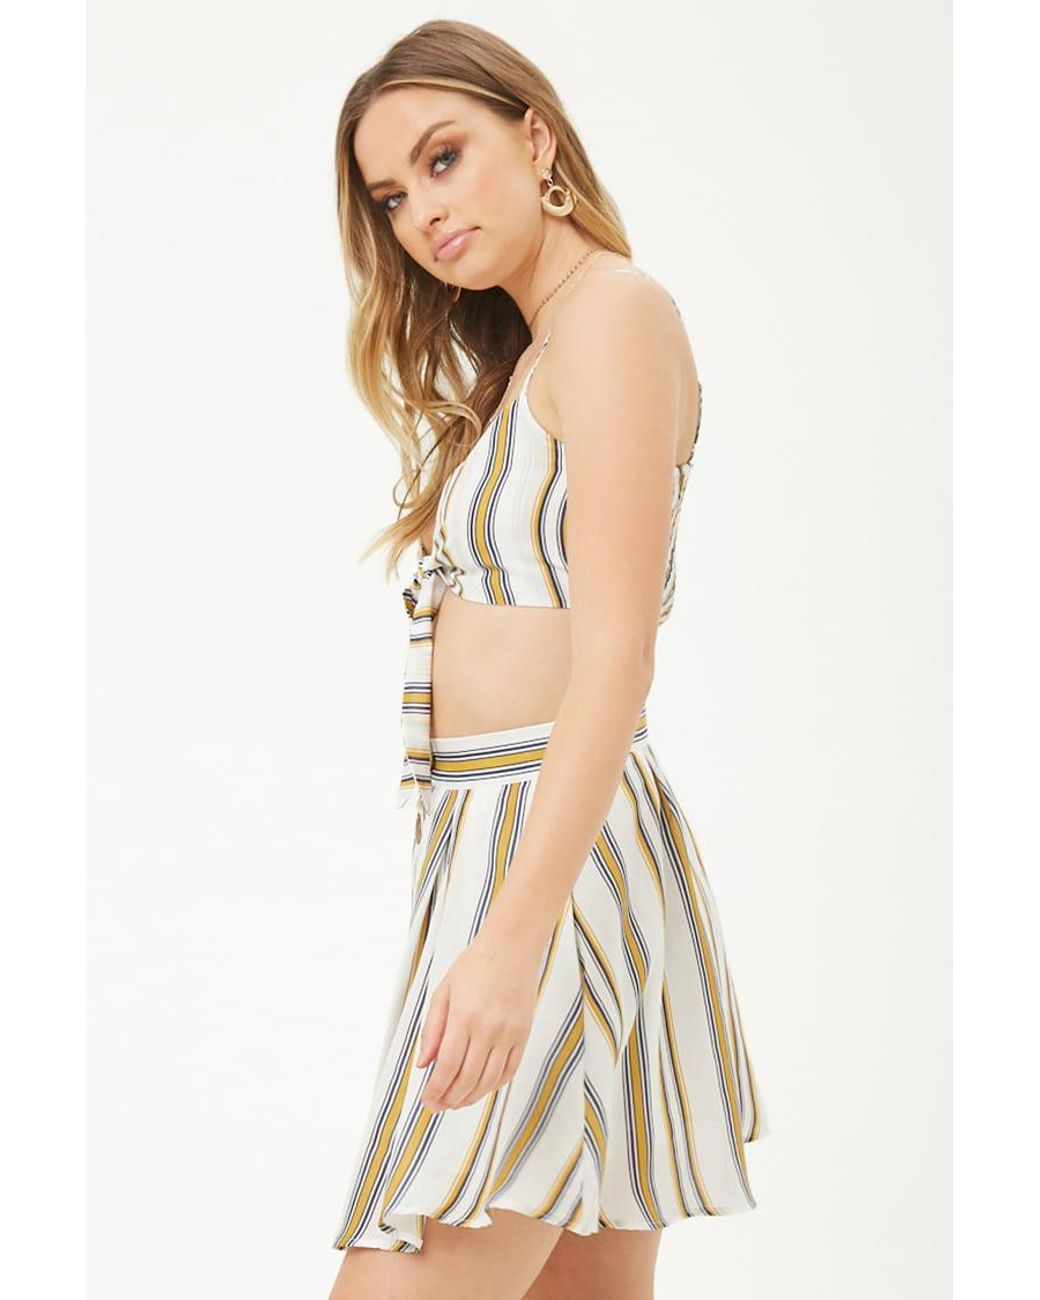 f7d5b52e665 Forever 21 Striped Tie-front Crop Top & Skirt Set - Save 3% - Lyst